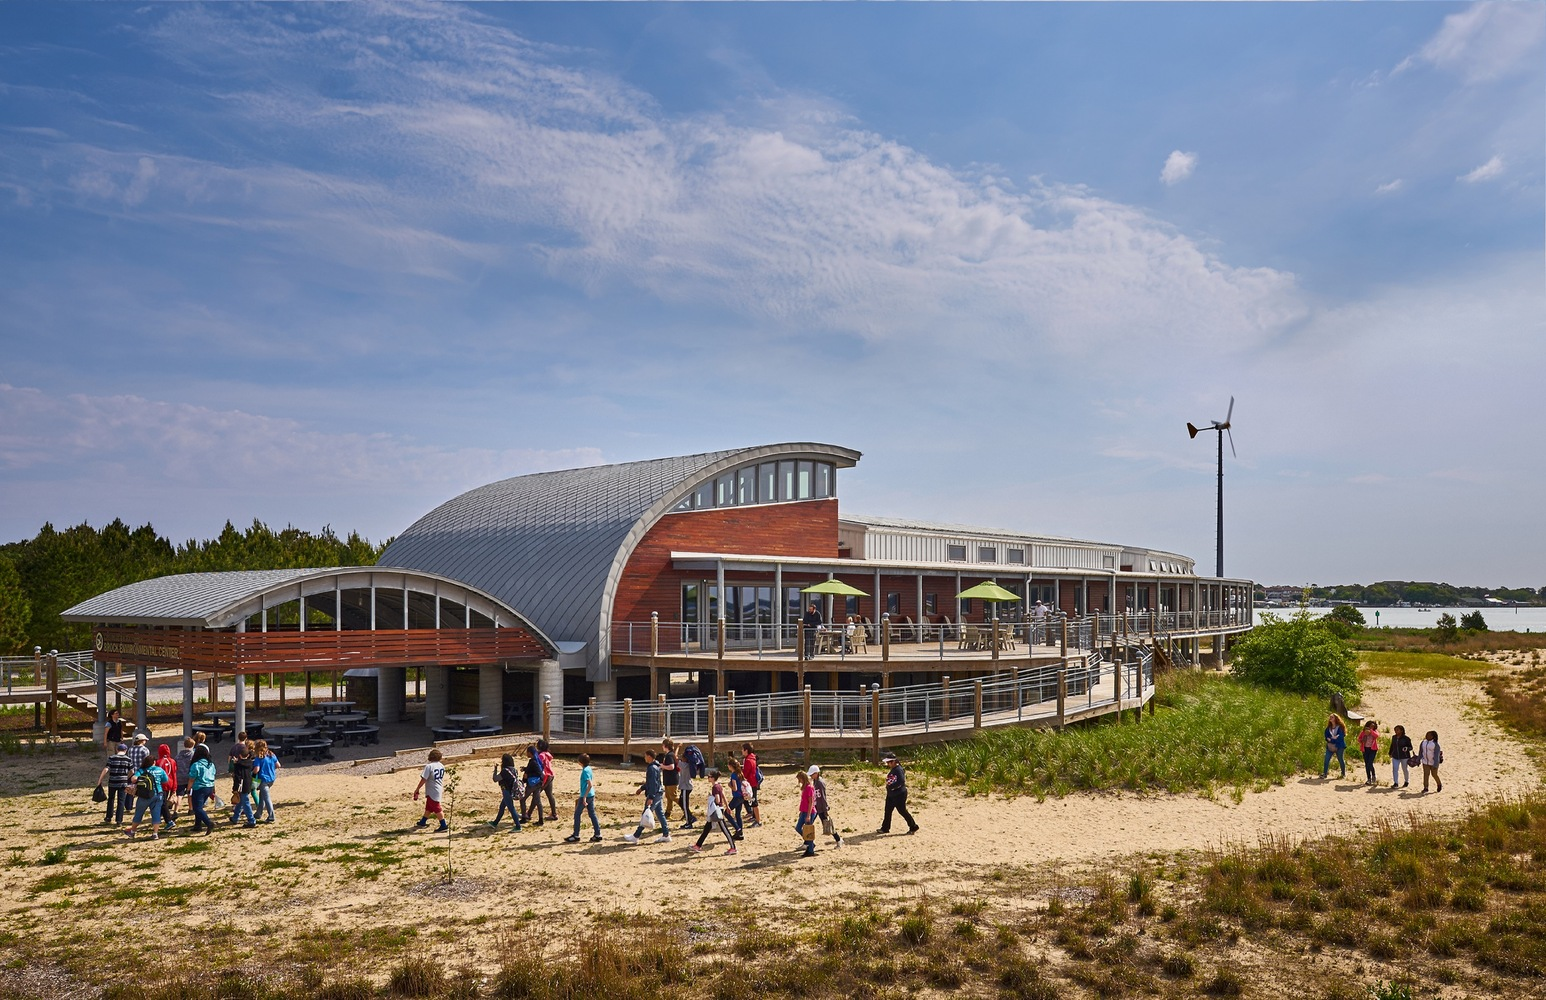 Brock Enviromental Center (Virginia Beach, Virginia – EEUU)